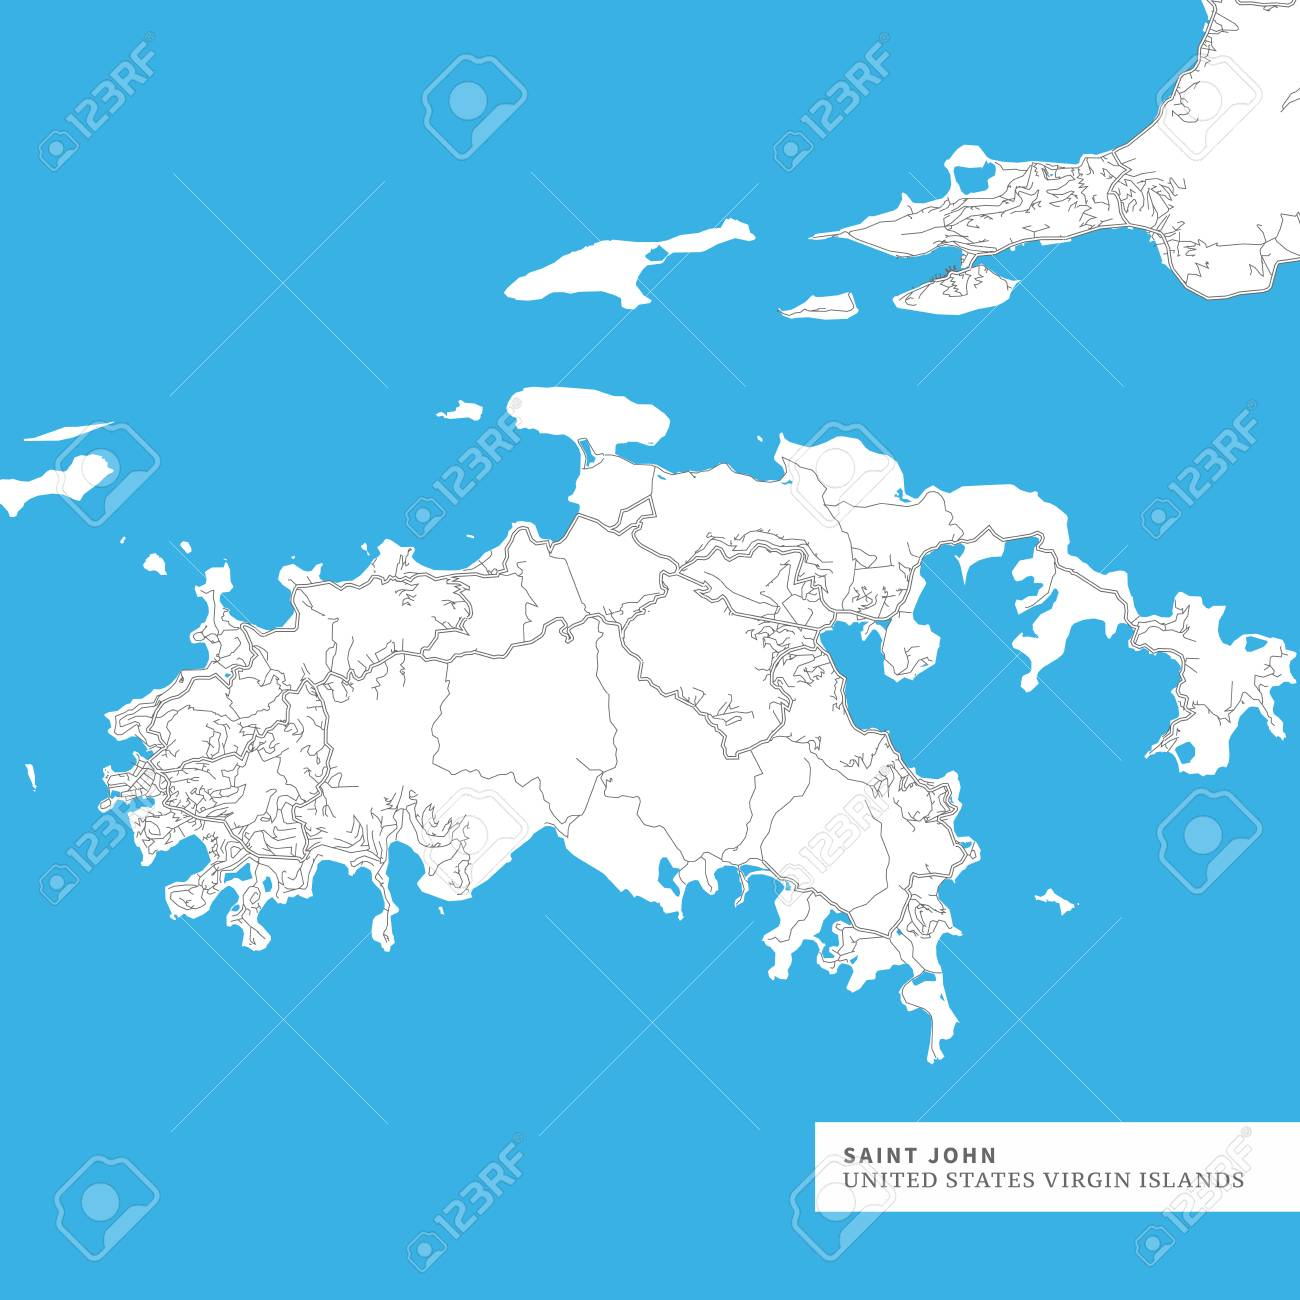 Map of Saint John Island, United States Virgin Islands, contains..